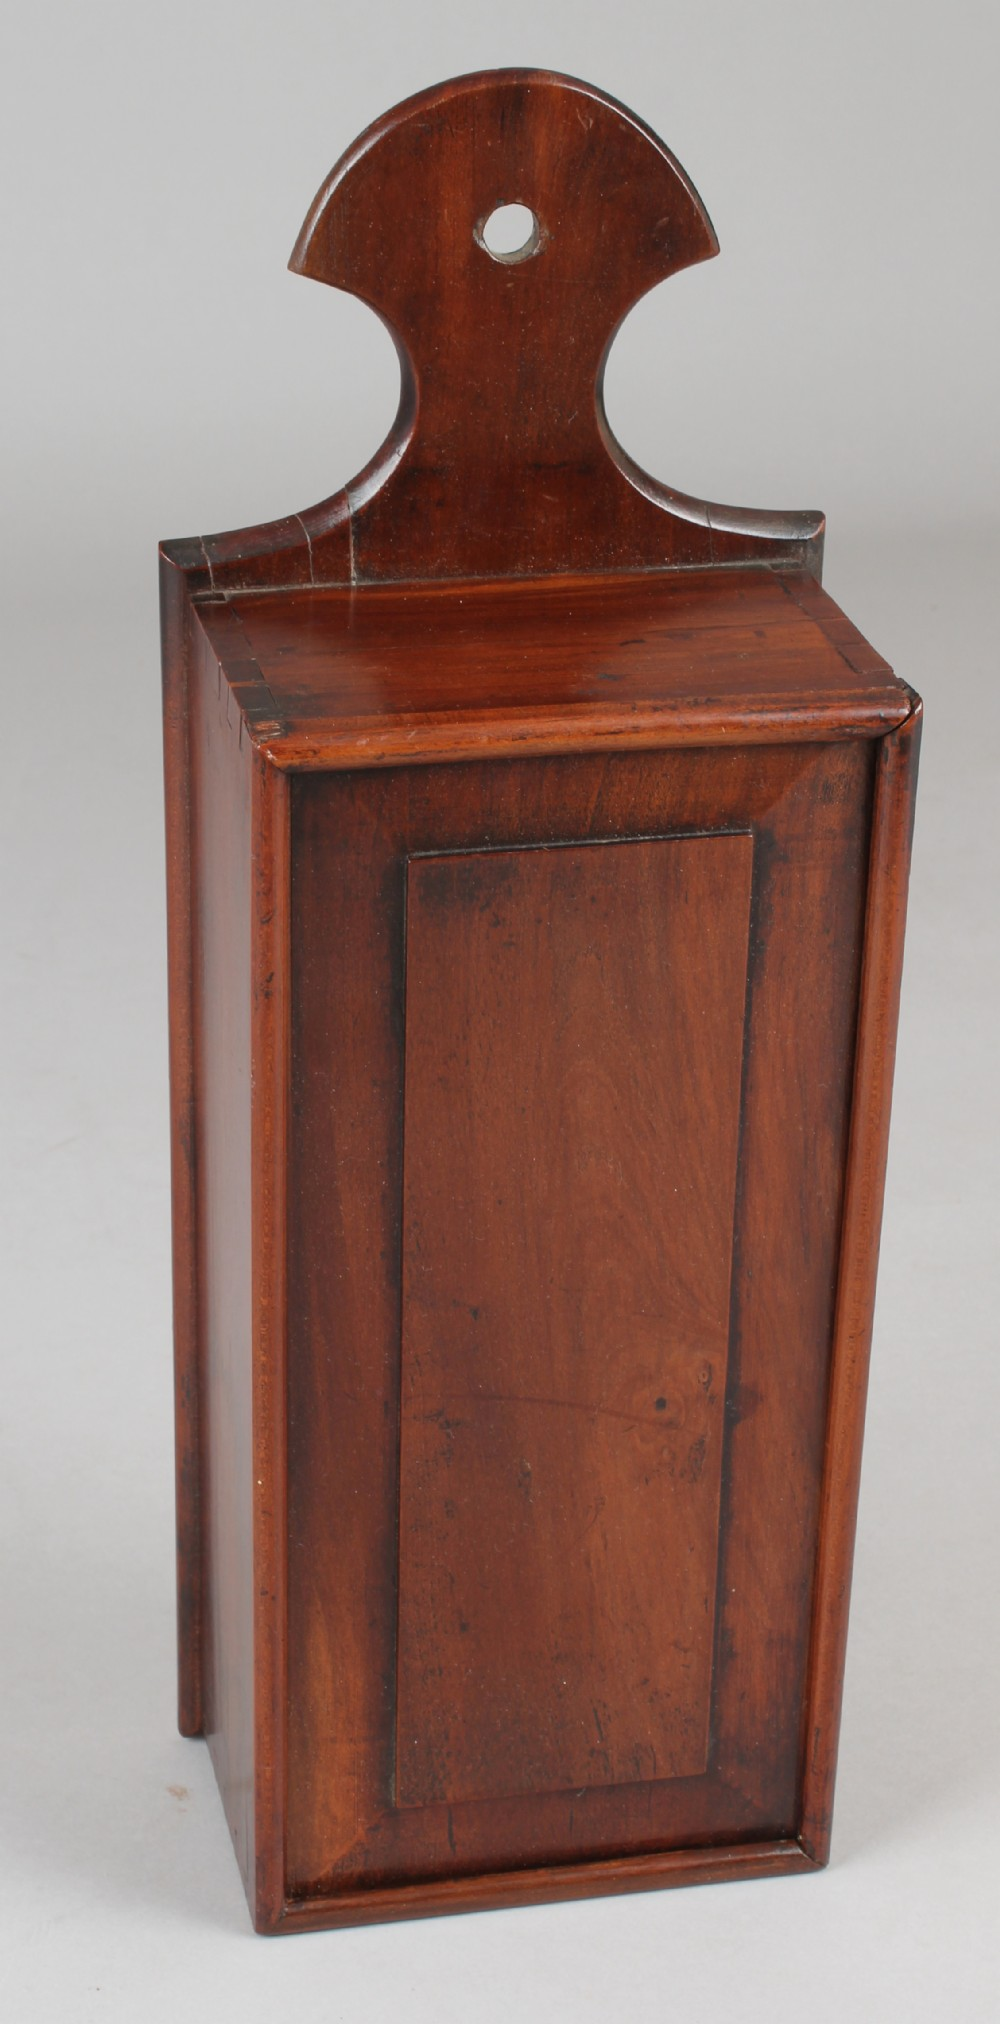 george iii period mahogany candlebox